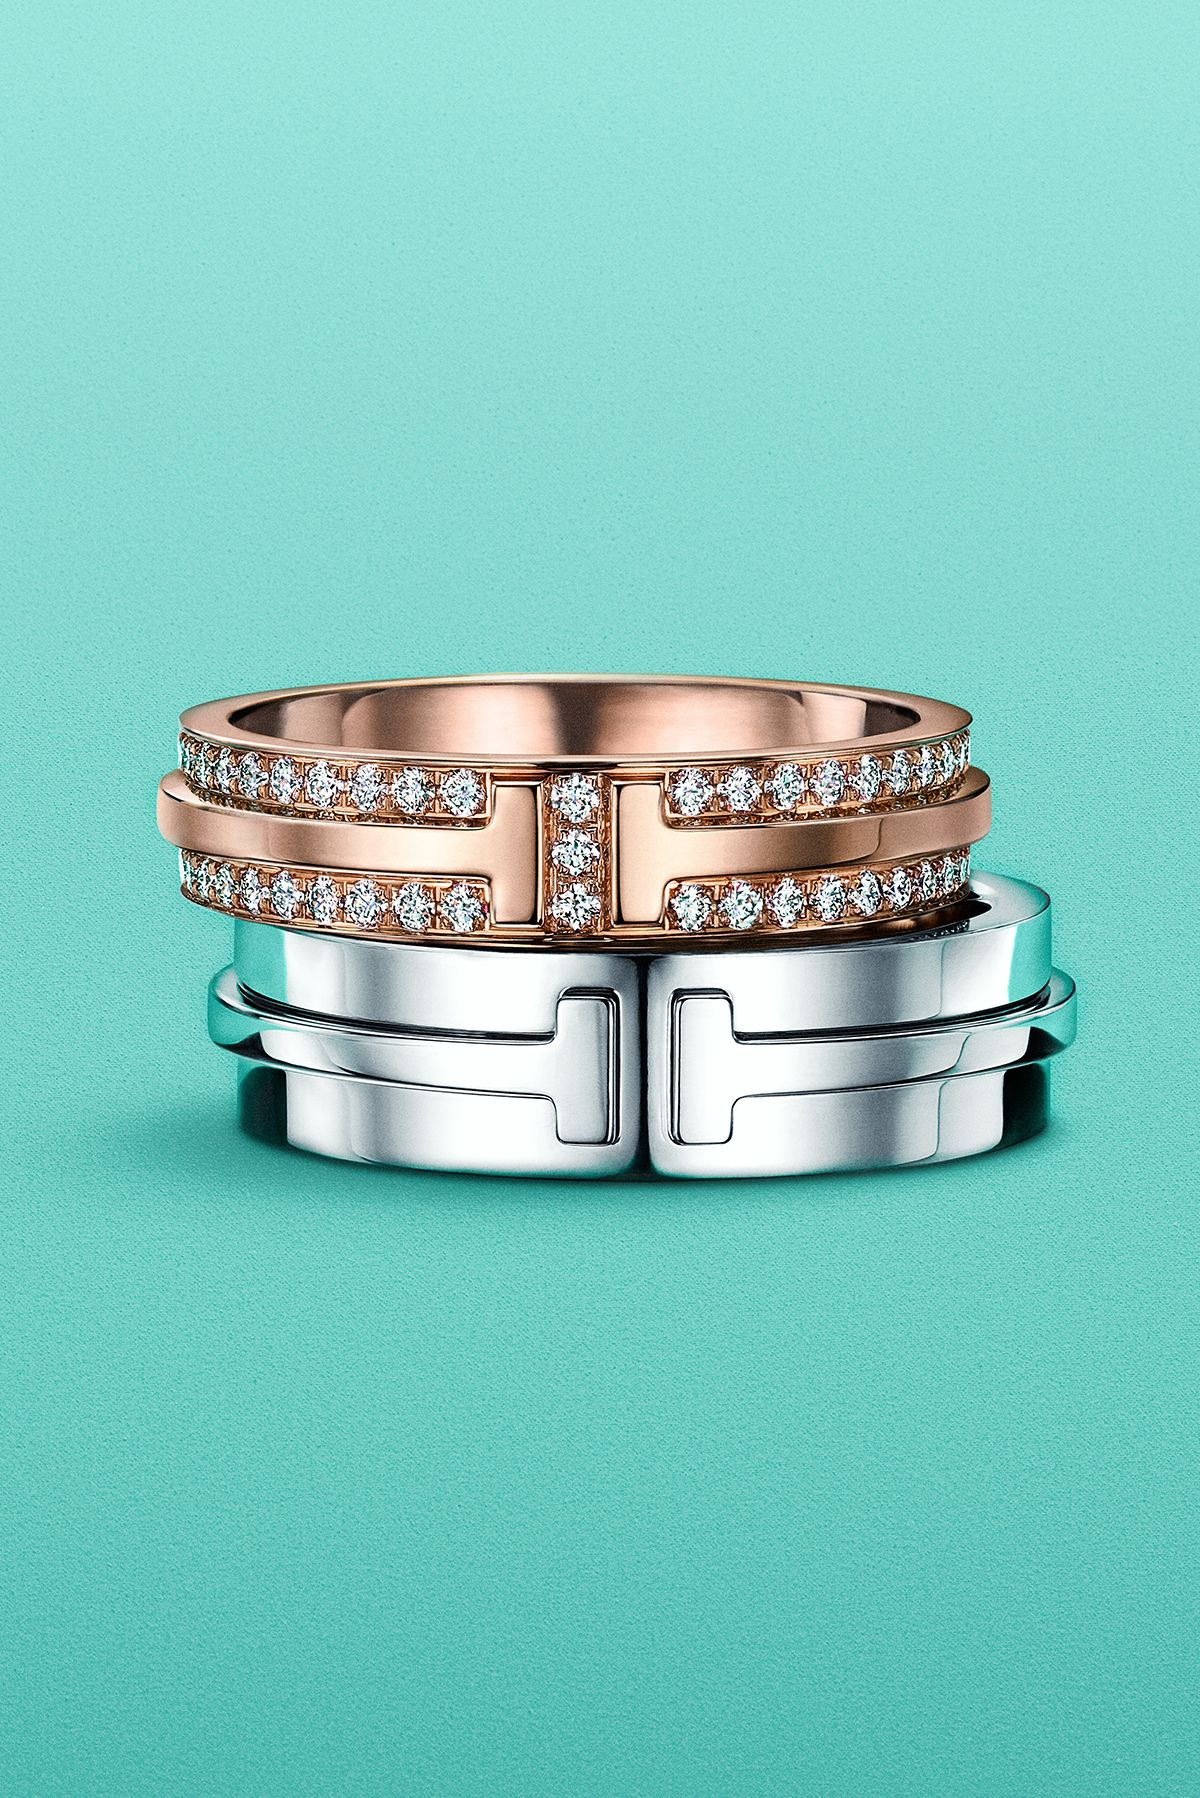 Tiffany T Two Band Rings In 18k Rose And White Gold Sterling Silver Jewelry Rings Diamond Solitaire Rings Wedding Rings Solitaire